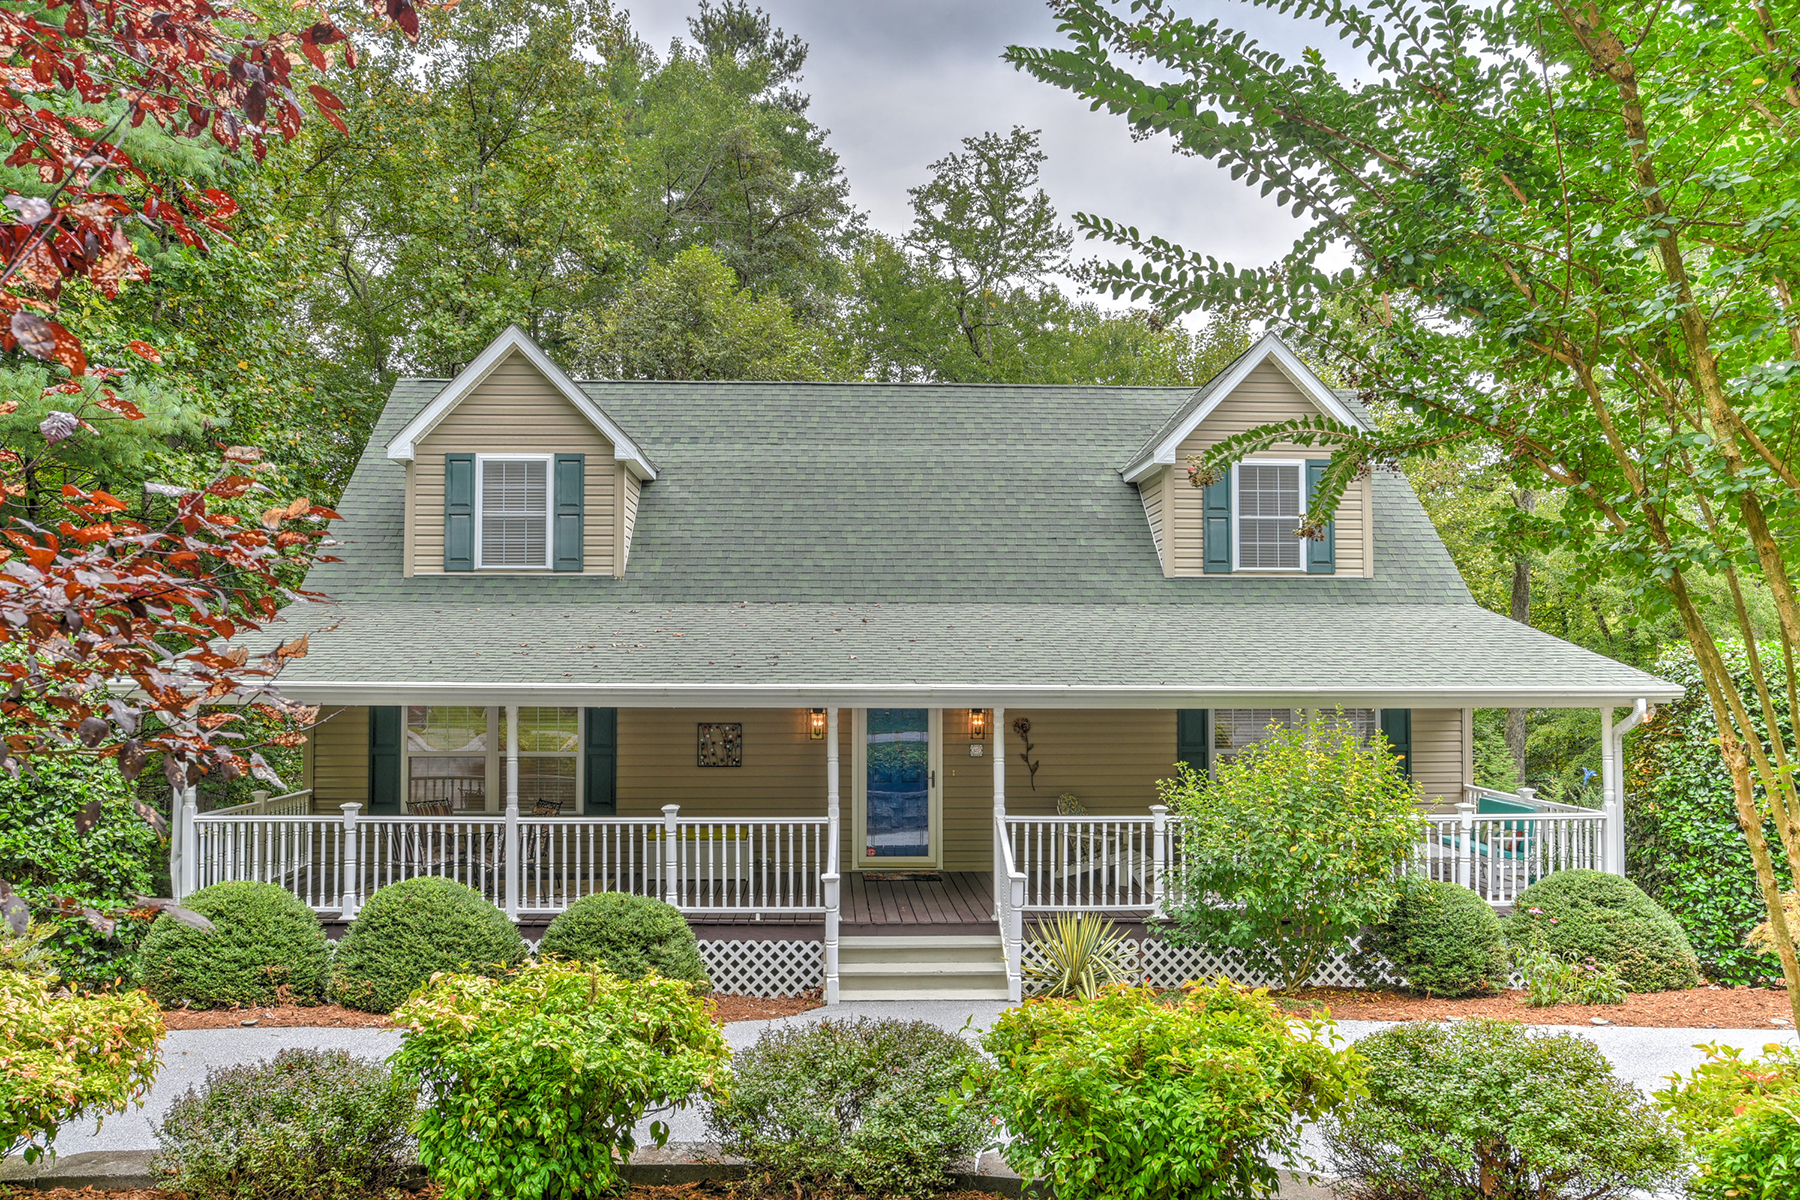 Single Family Homes for Sale at STONEBROOK 107 Mountain Pl Hendersonville, North Carolina 28791 United States